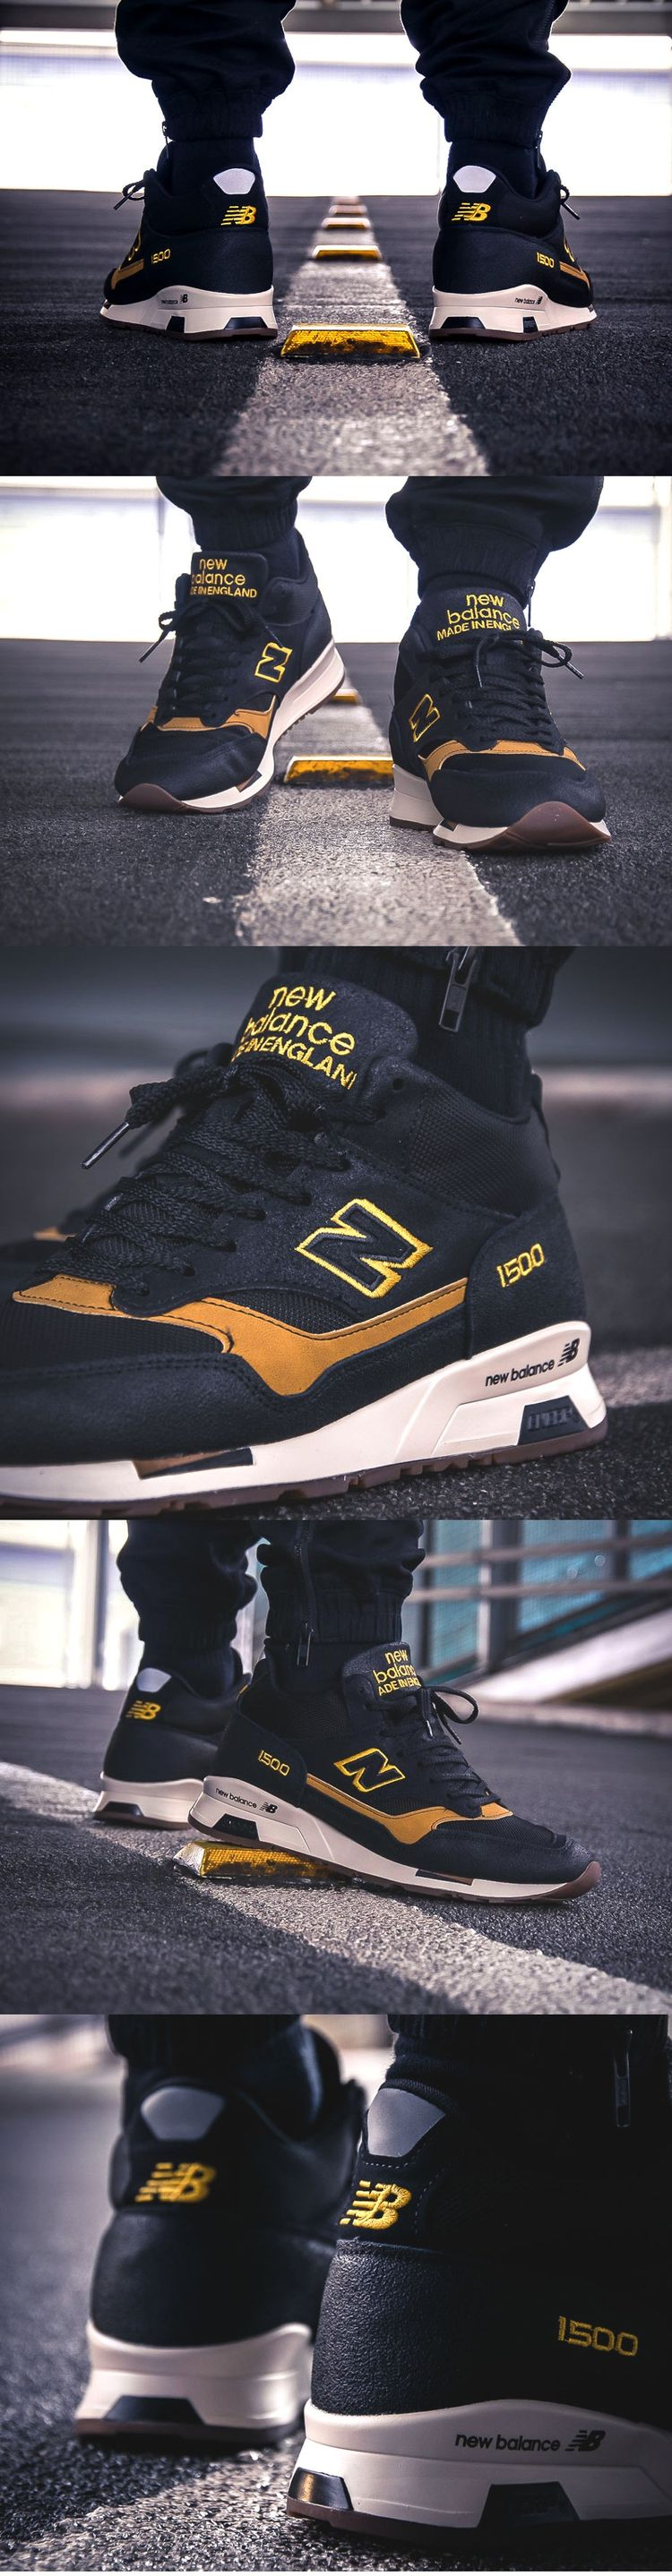 07991ac4e6690  New  Balance MH 1500 KT  Black Yellow  (made in England)